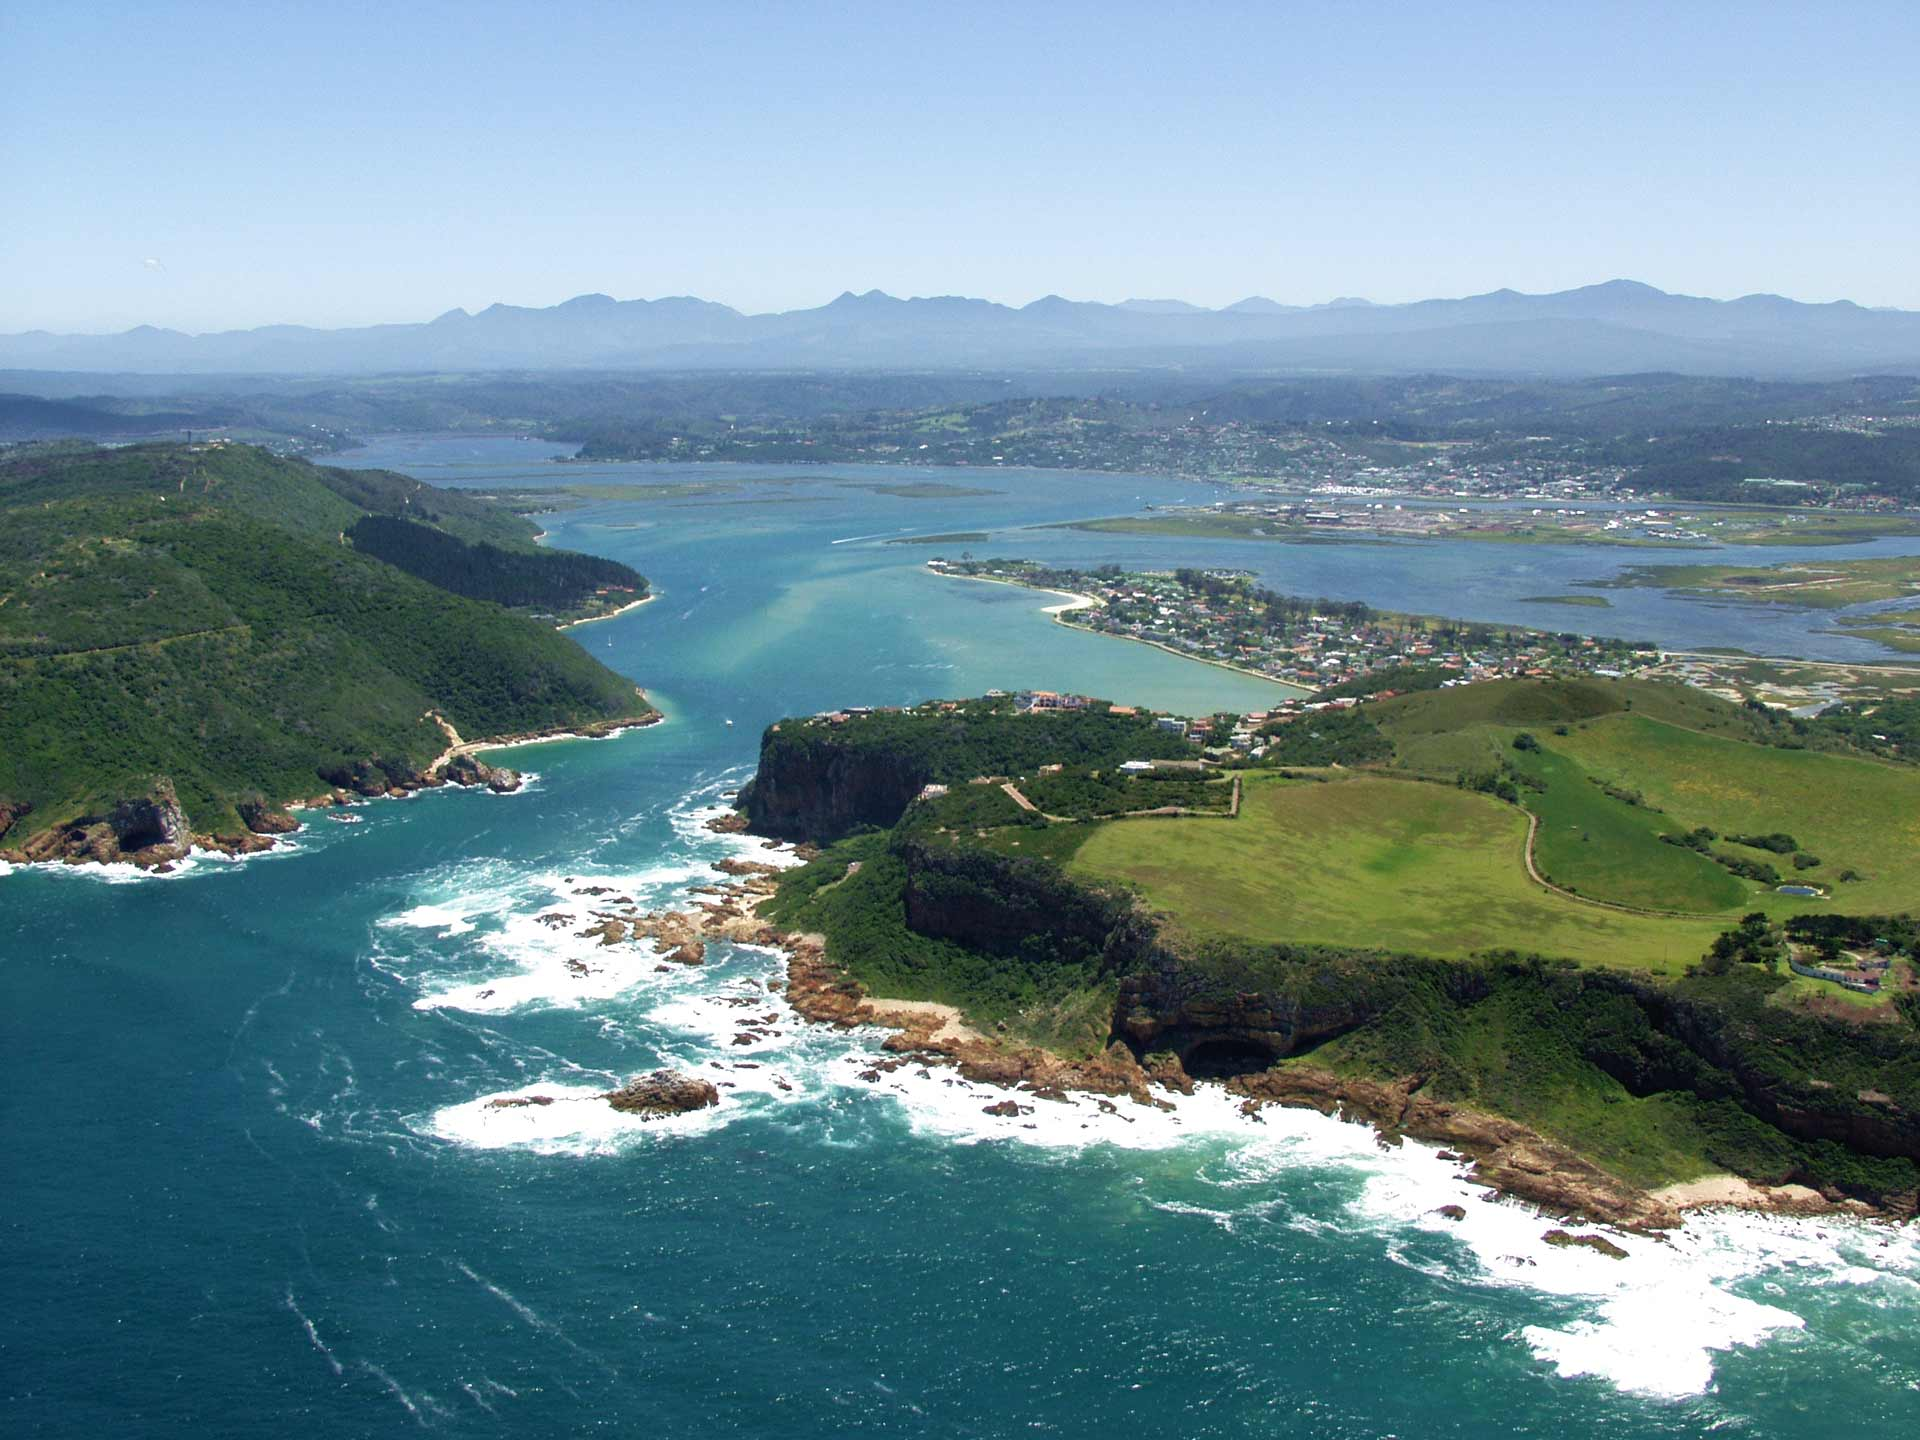 Lagoon of Knysna with its aquamarine colored water.